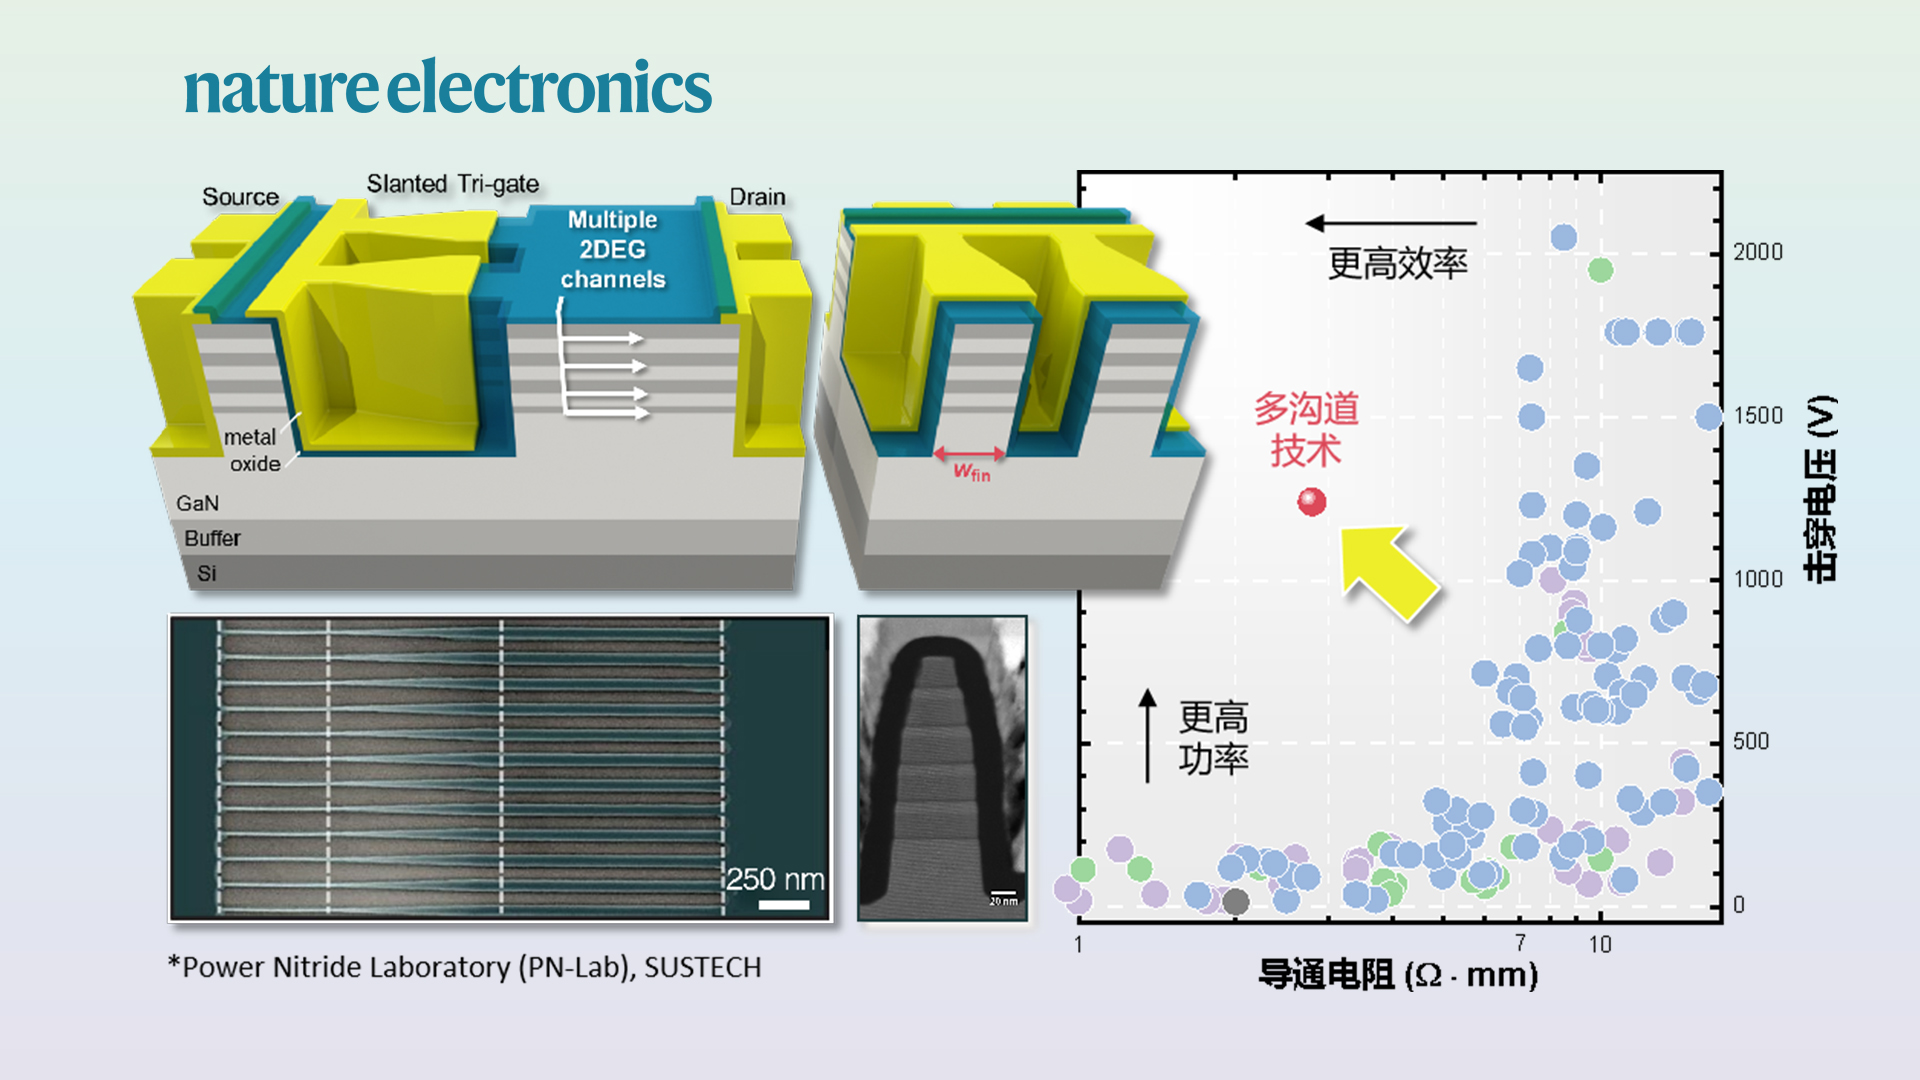 SUSTech's Jun Ma demonstrates new technology for efficient power conversion